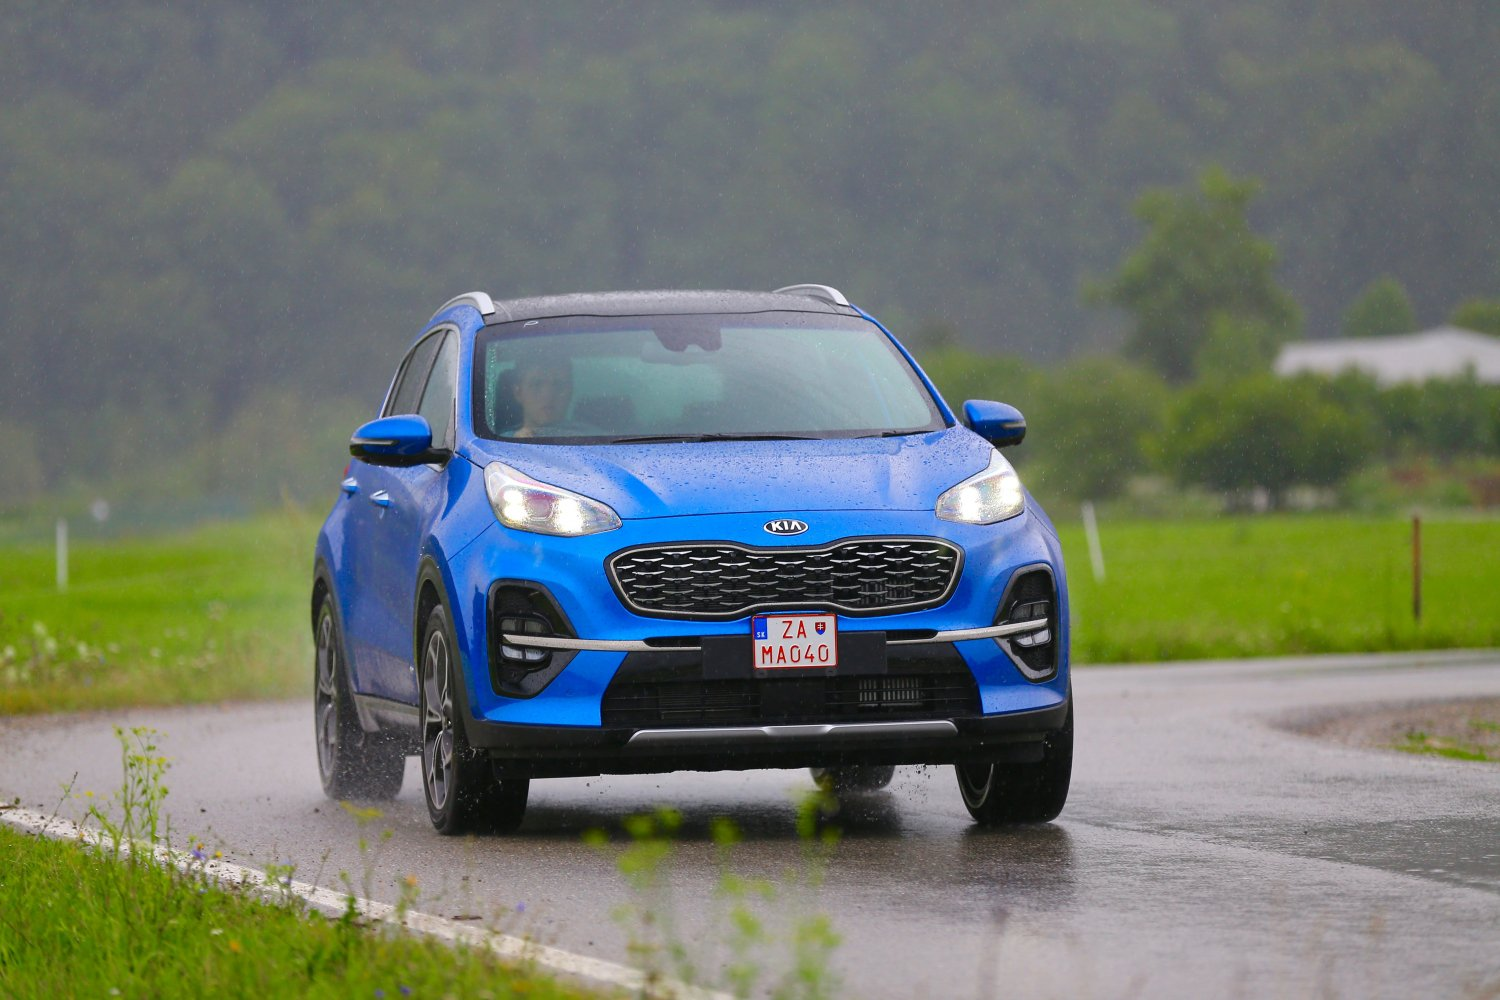 KIA Sportage Blue rainy day on road